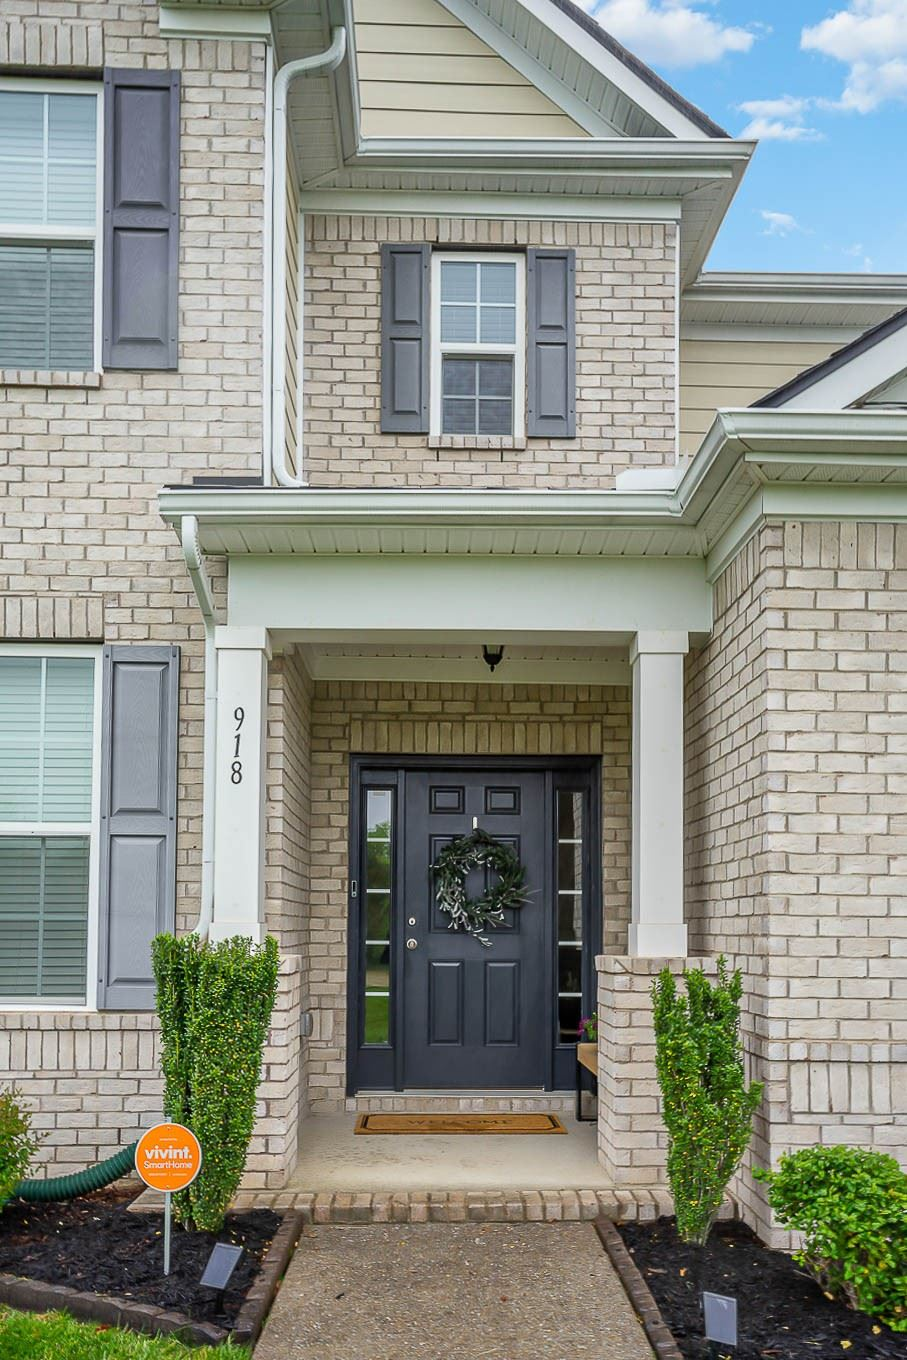 Photo of 918 Whittmore Dr, Nolensville, TN 37135 (MLS # 2249795)